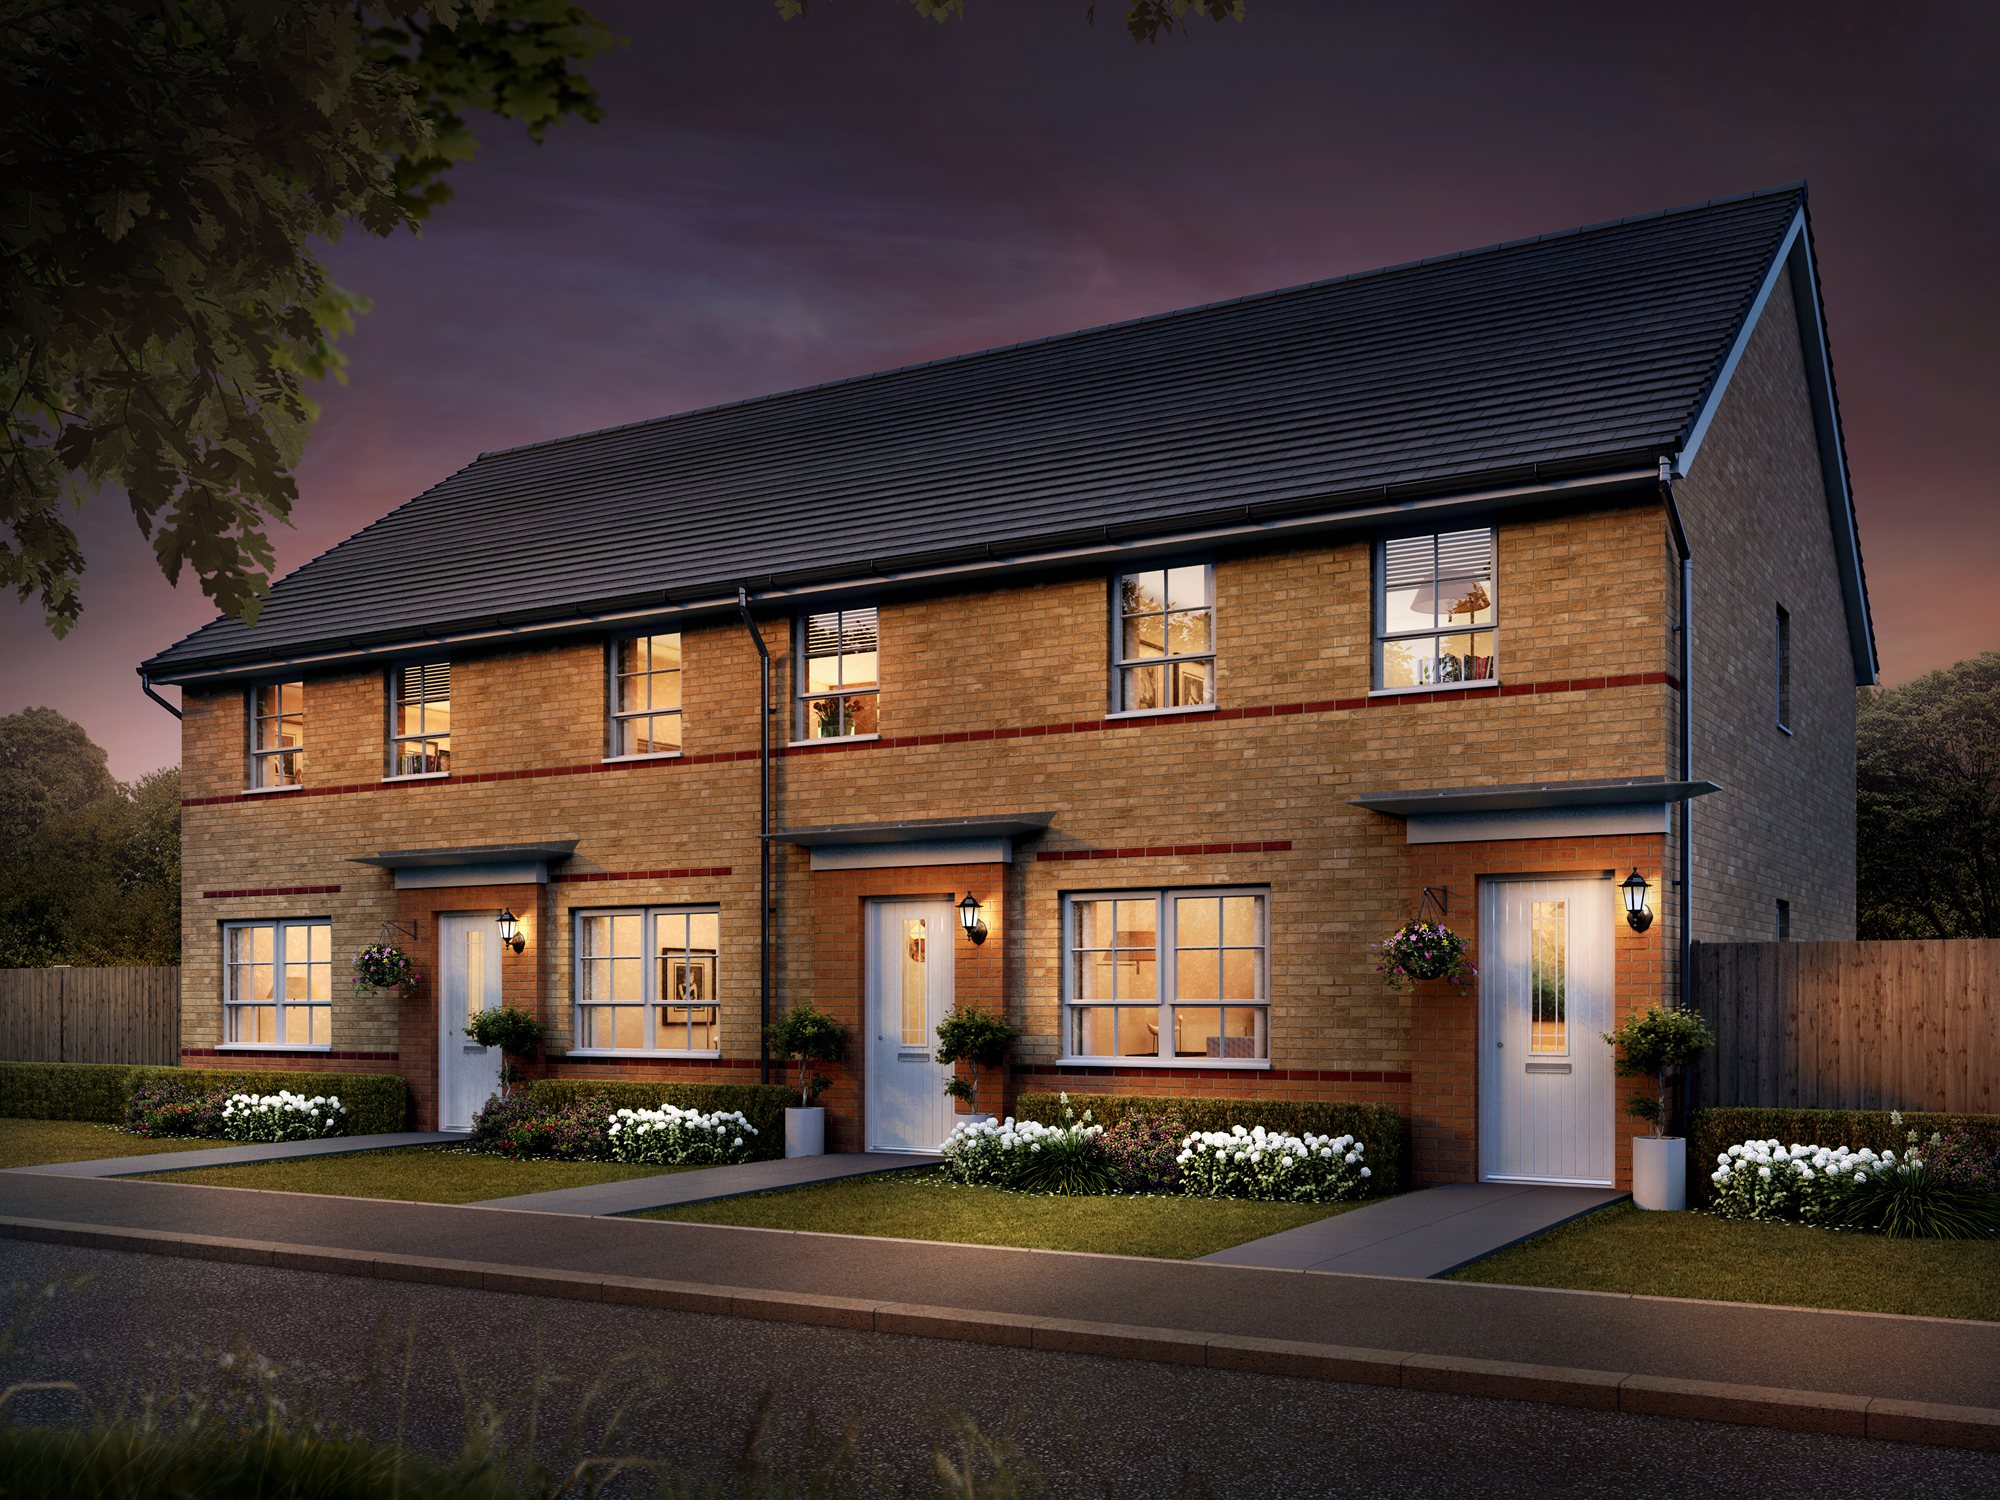 New Build Homes in Felpham